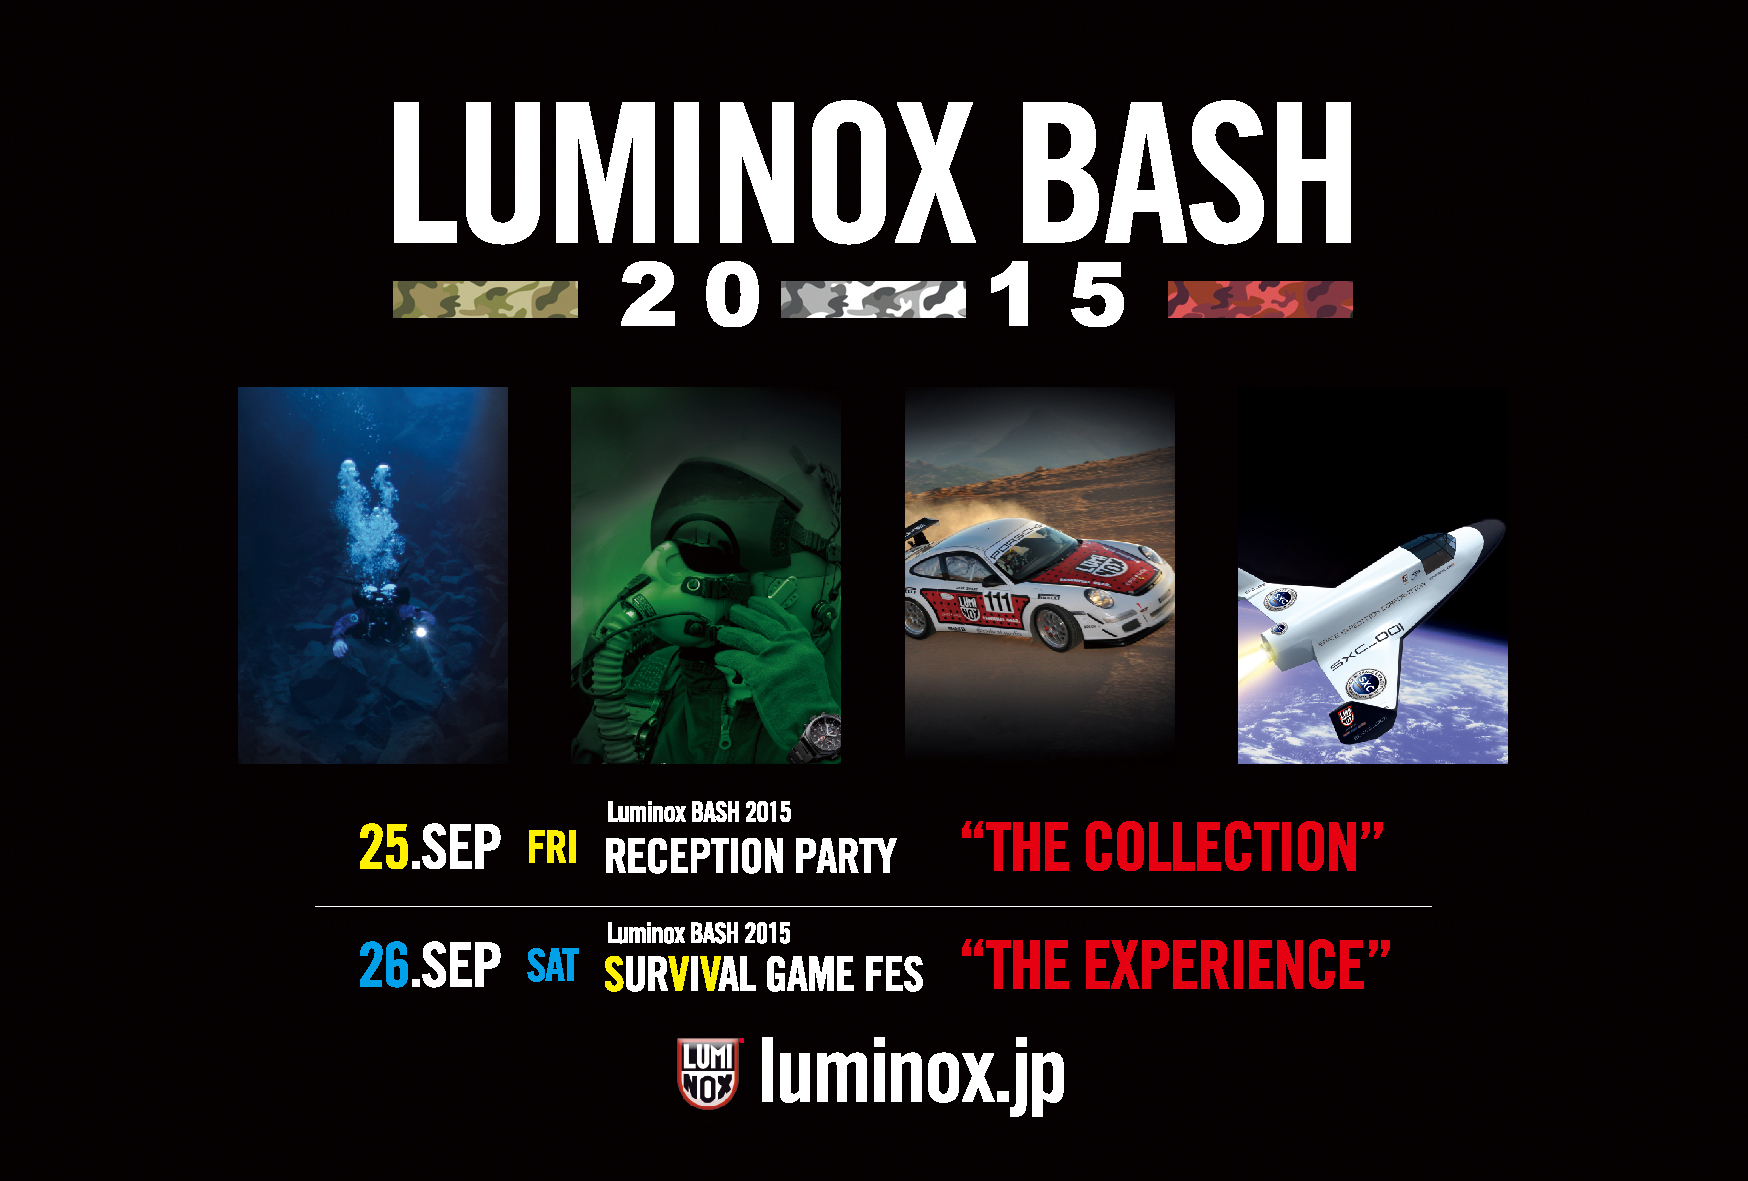 Luminox BASH 2015